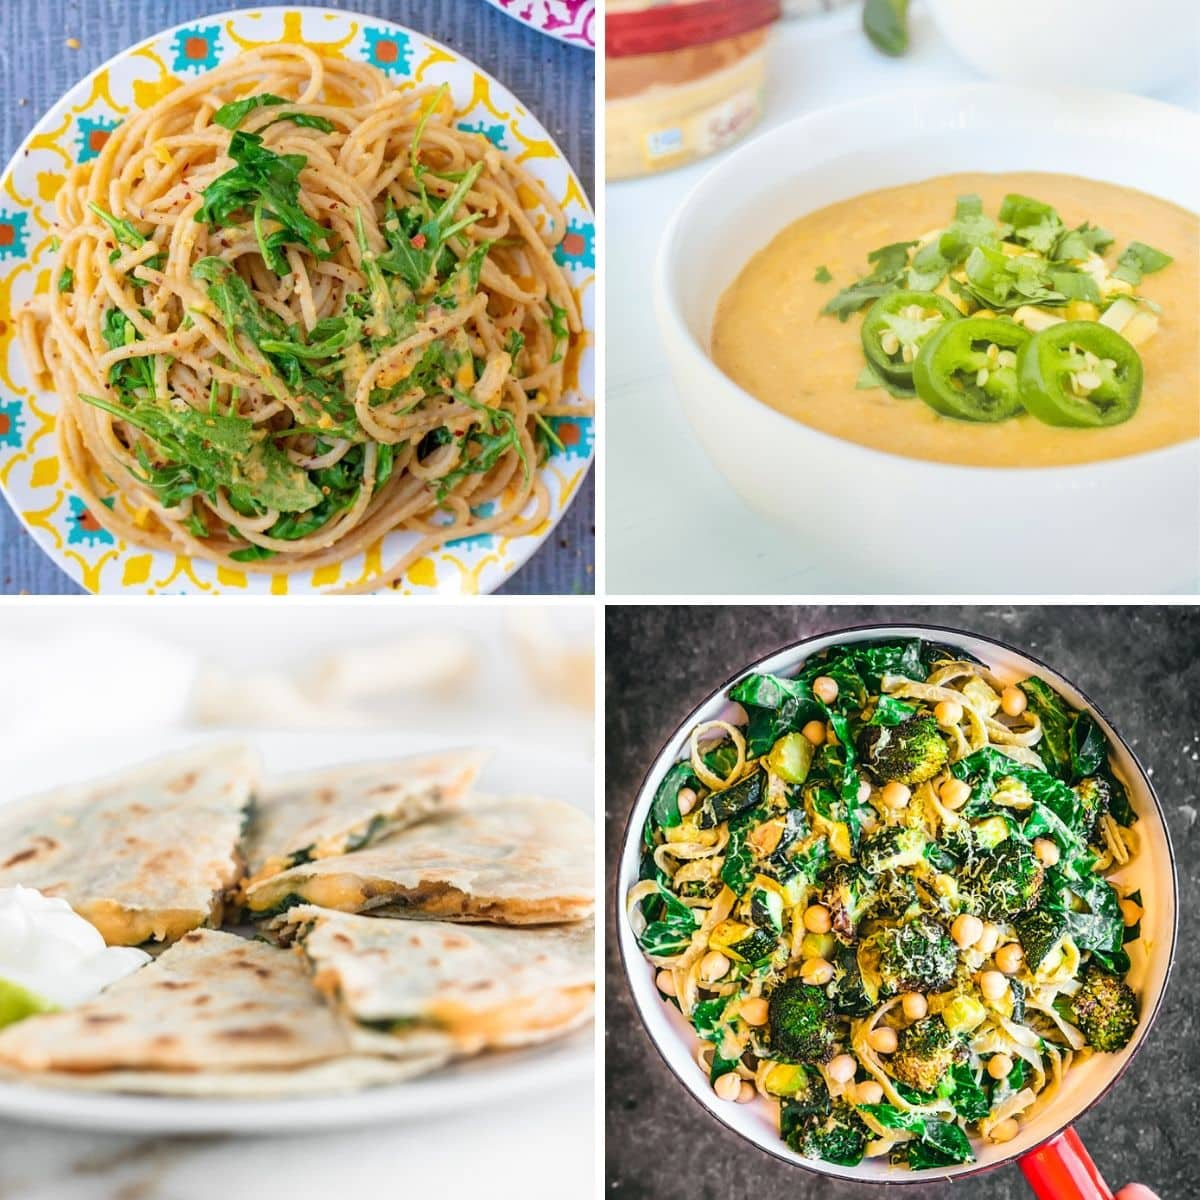 4 images 4 food: Creamy Butternut Squash Hummus Pasta, Jalapeno Hummus Corn Chowder, Spinach Mushroom Hummus Quesadilla, Creamy Hummus and Greens Pasta